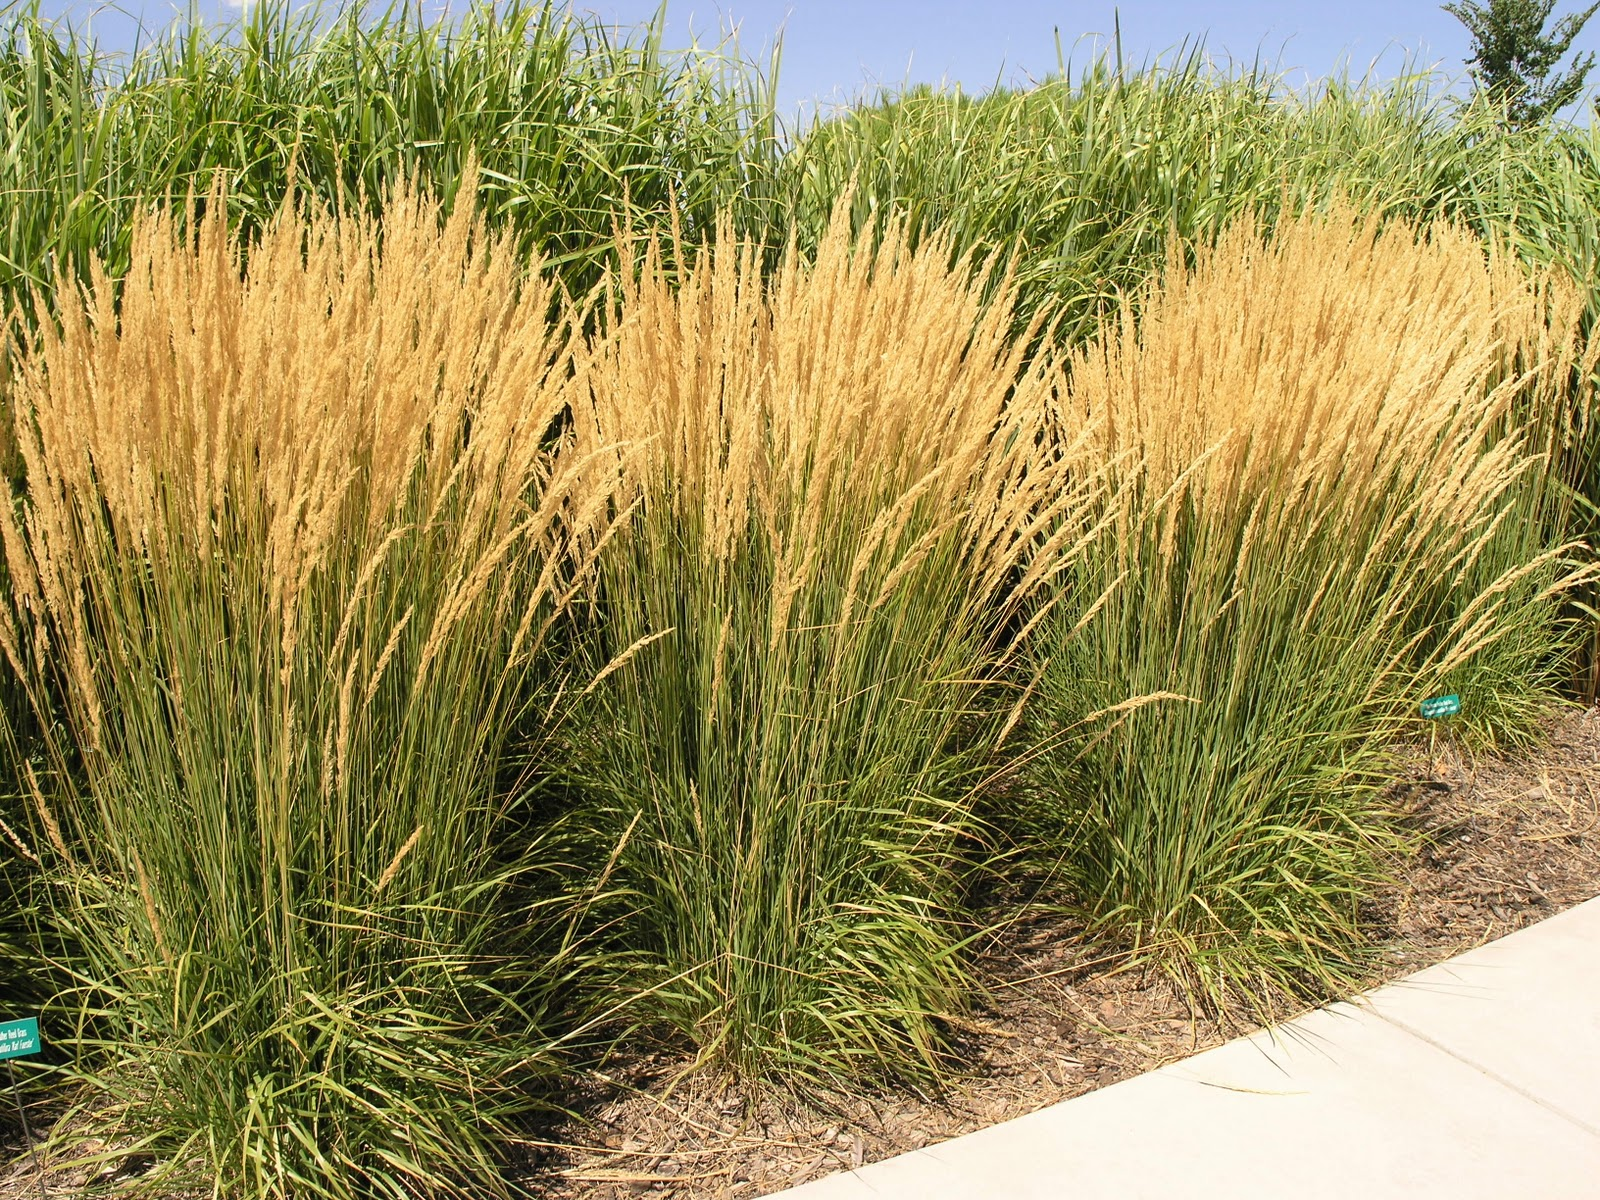 The diy landscaper part i sunnyside gardens for Full sun perennial grasses